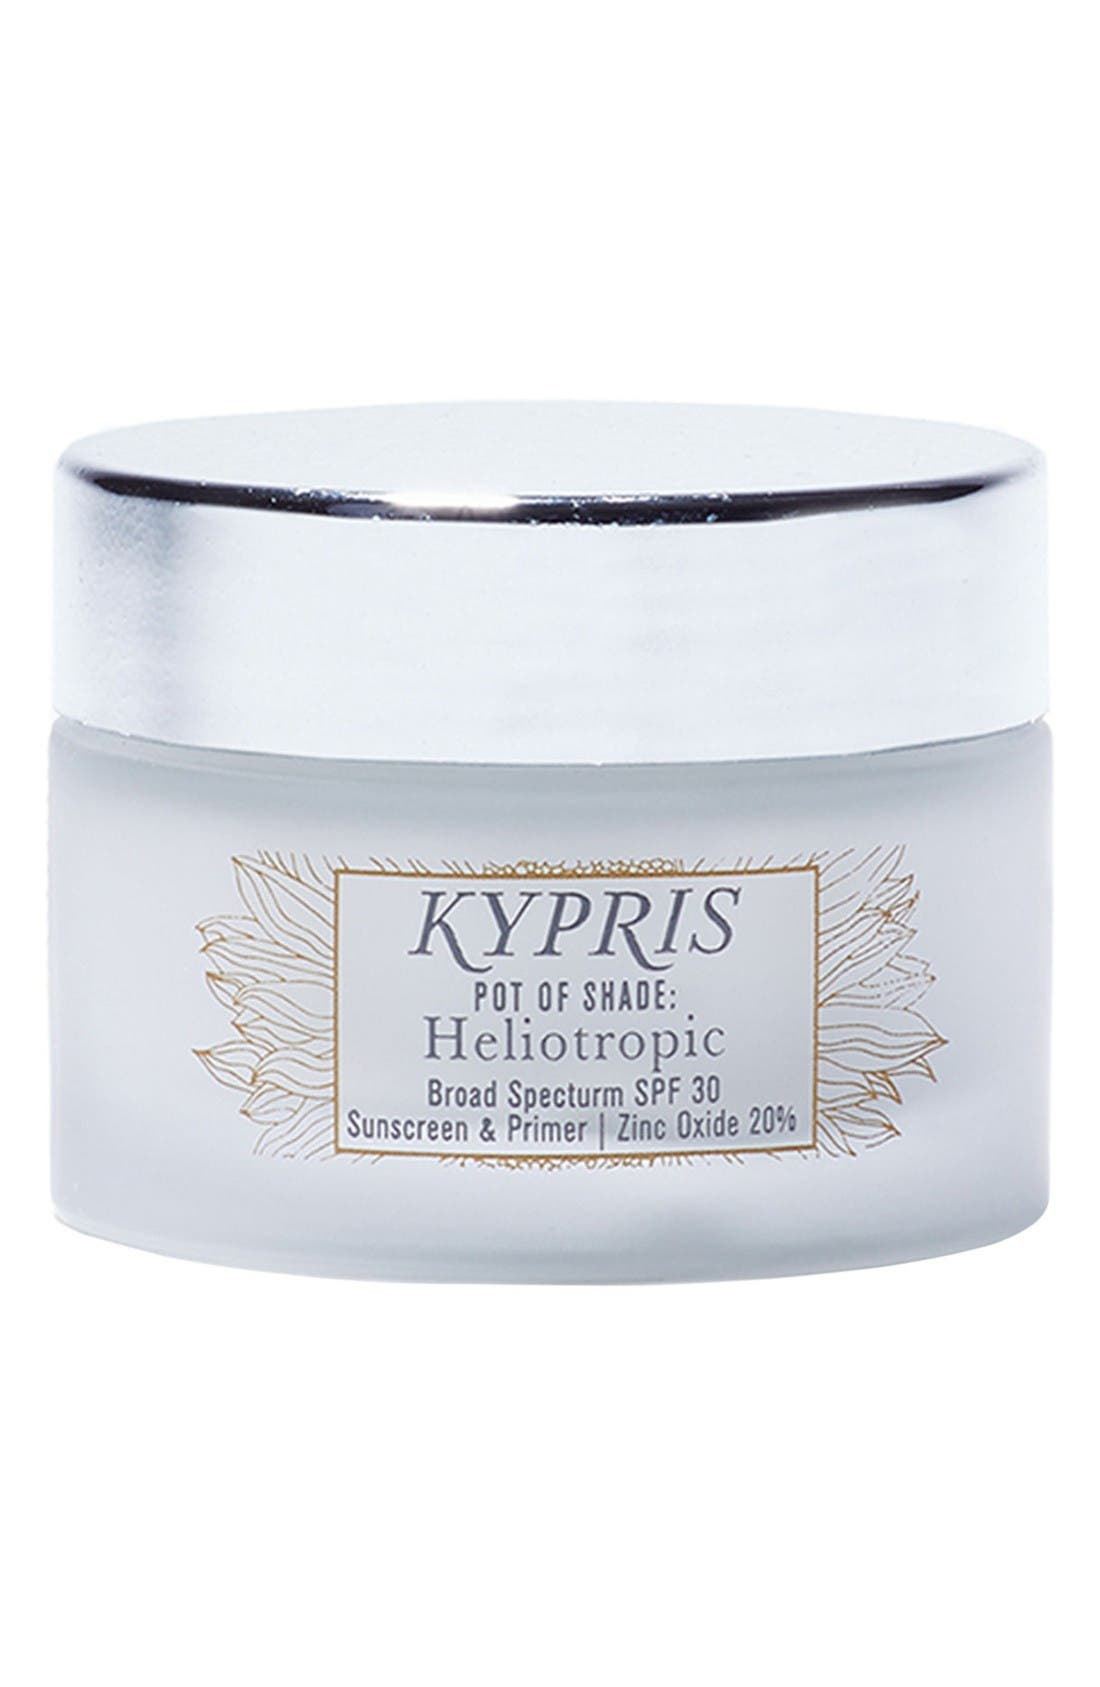 KYPRIS Beauty Pot of Shade Heliotropic Treatment Primer SPF 30